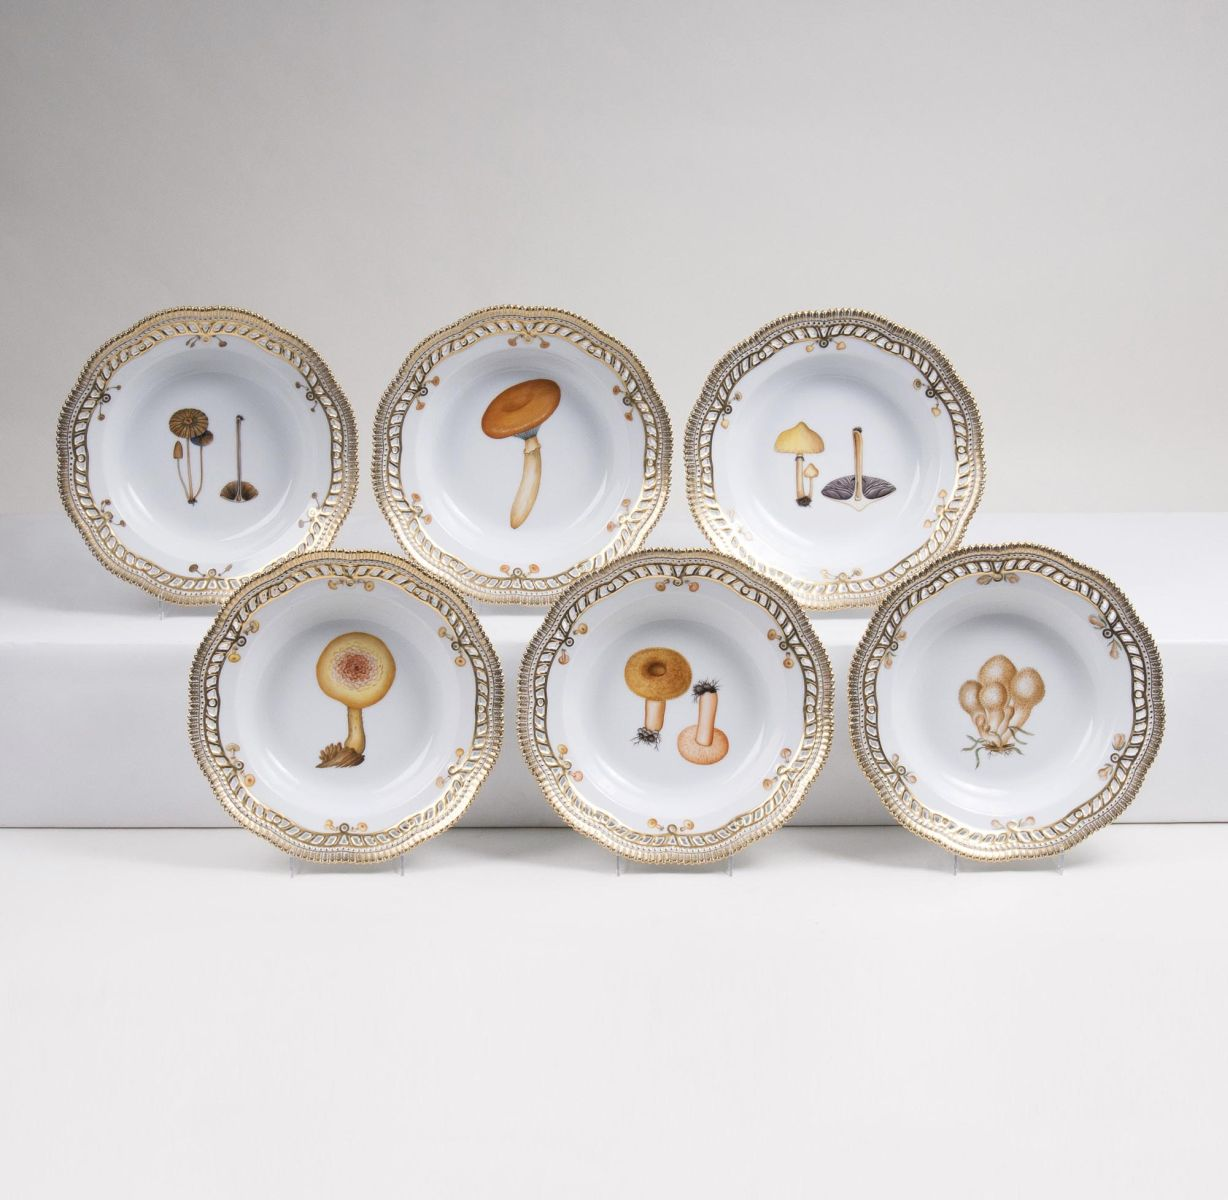 A Set of 6 reticulated Flora Danica Soup Plates